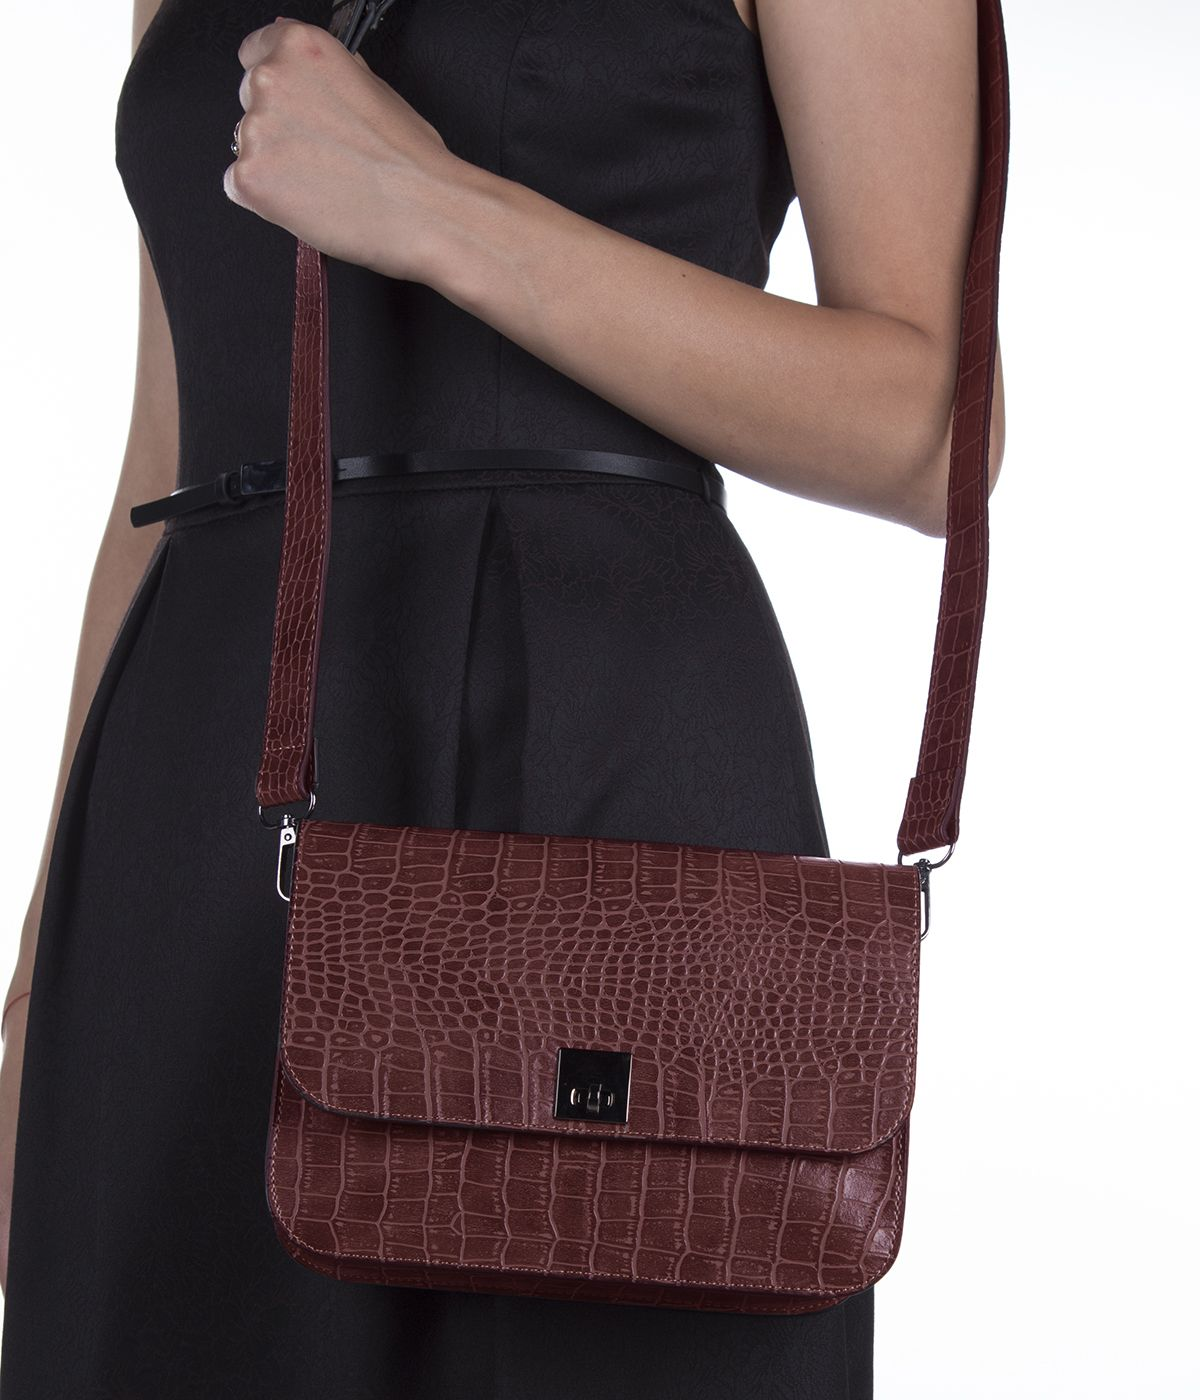 LEATHER BORDO  BAG WITH SNAKE SKIN IMITATION  4